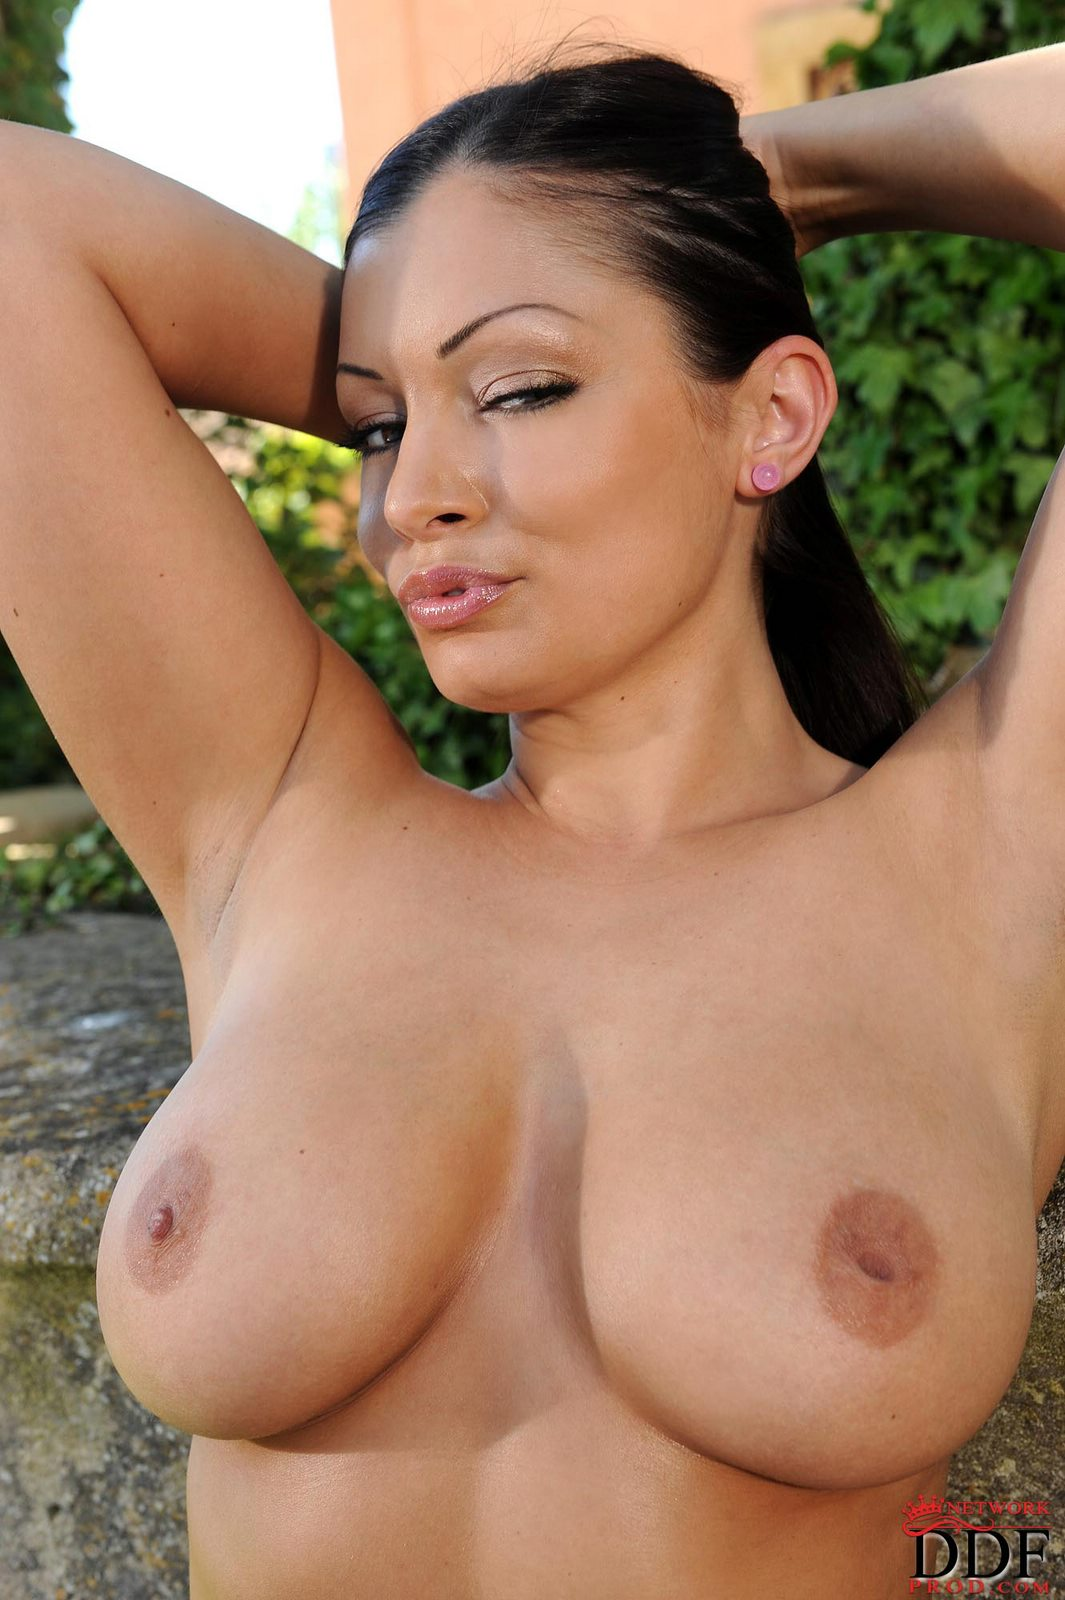 pics of puerto rican women naked with big titties